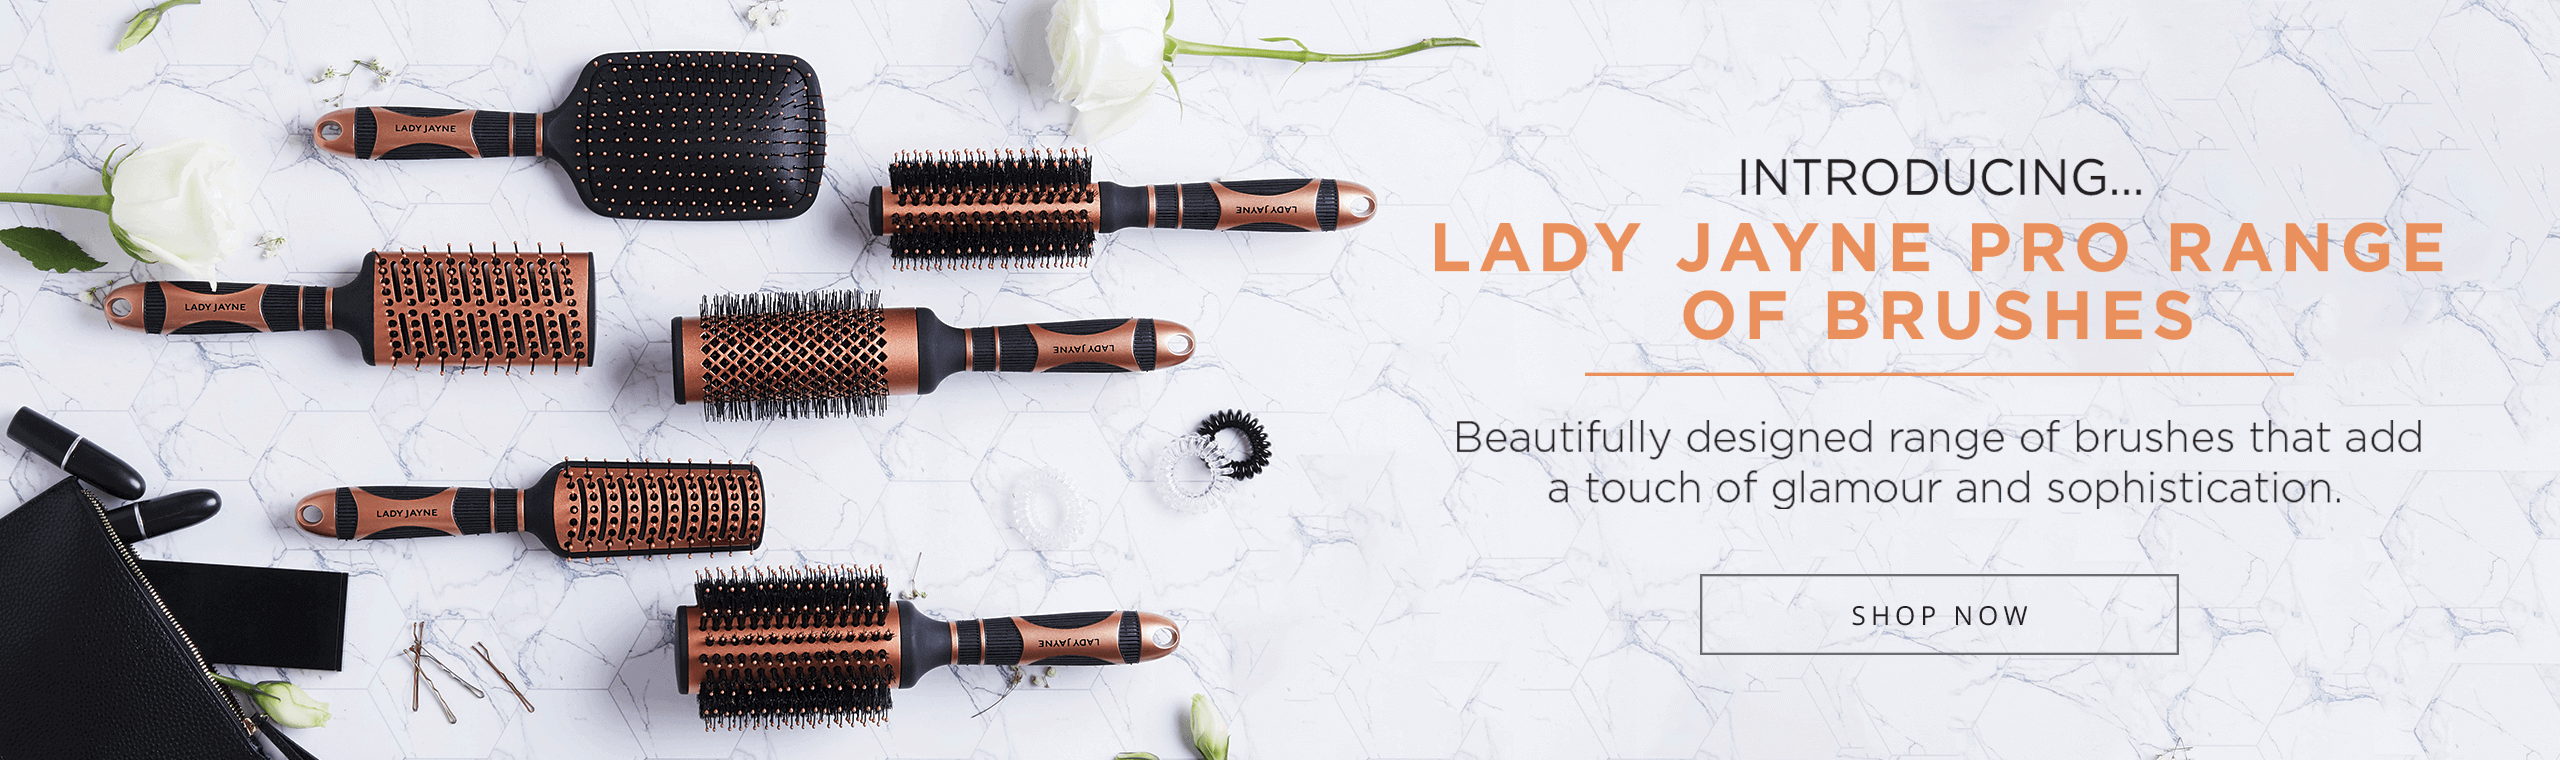 Lady Jayne Pro Range Brushes - Beautifully designed range of brushes that add a touch of glamour and sophistication.